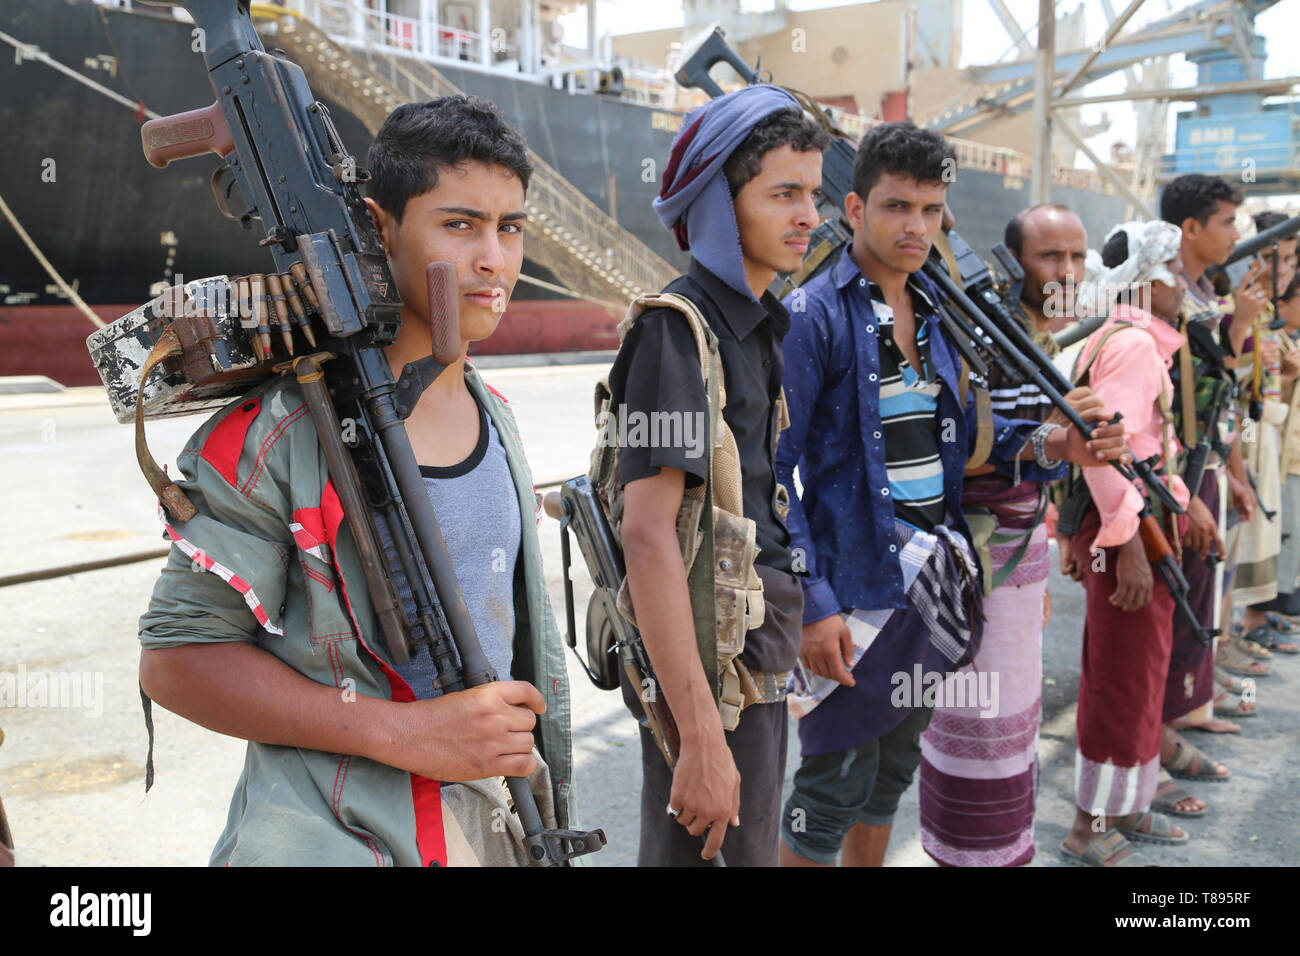 (190511) -- HODEIDAH (YEMEN), May 11, 2019 (Xinhua) -- Houthi members are seen during their withdrawal from Salif port in Hodeidah, Yemen, on May 11, 2019. Yemen's Houthi rebels began on Saturday withdrawal from two ports of Hodeidah Province, eyewitnesses said. (Xinhua) Stock Photo